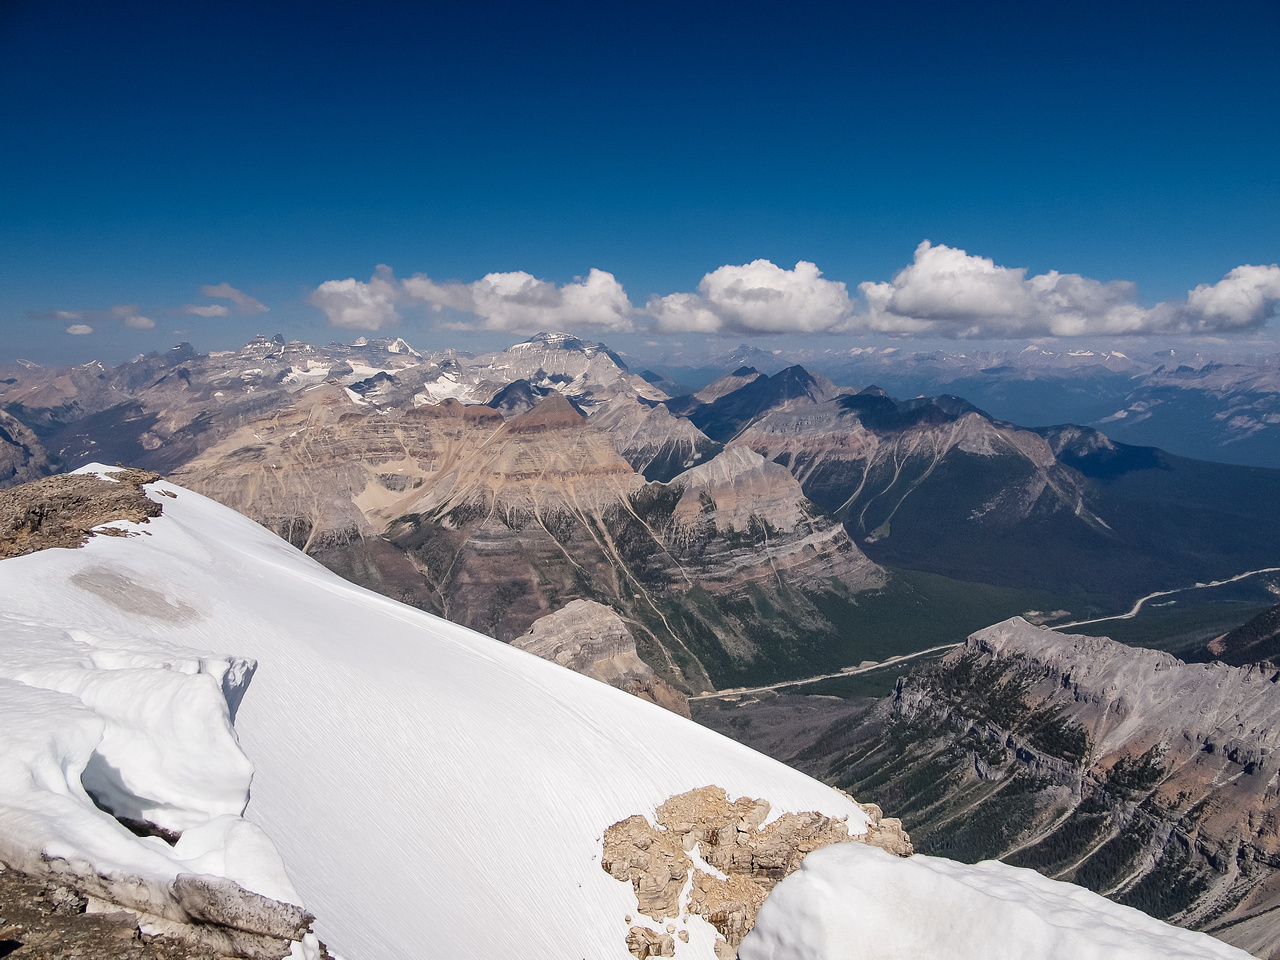 Mount Whymper with the Valley of Ten Peaks and the Fay Glacier beyond.